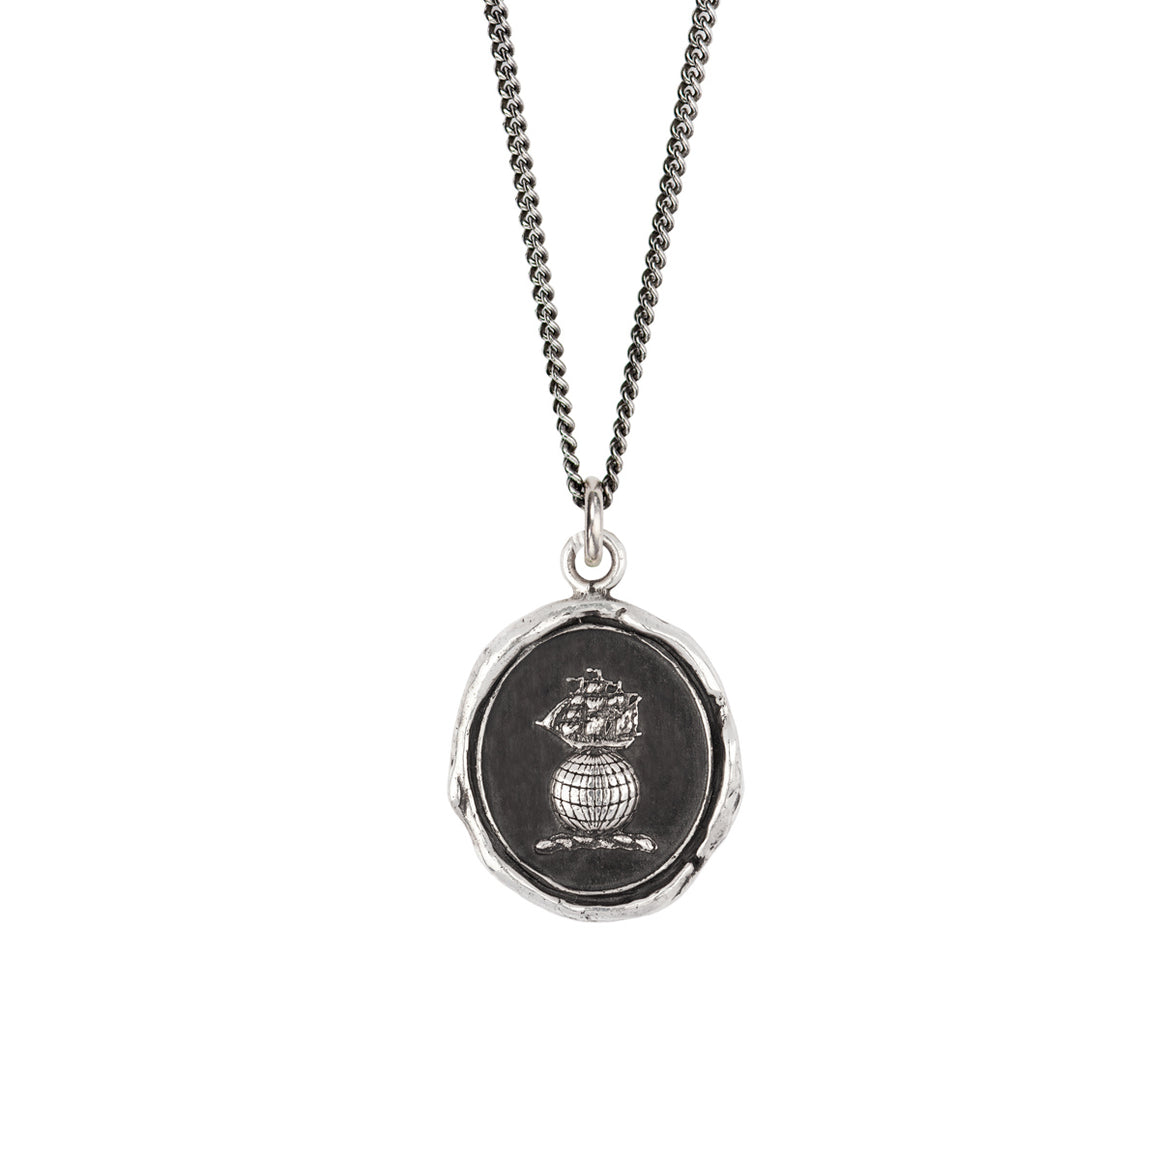 EXPLORER PYRRHA TALISMAN NECKLACE